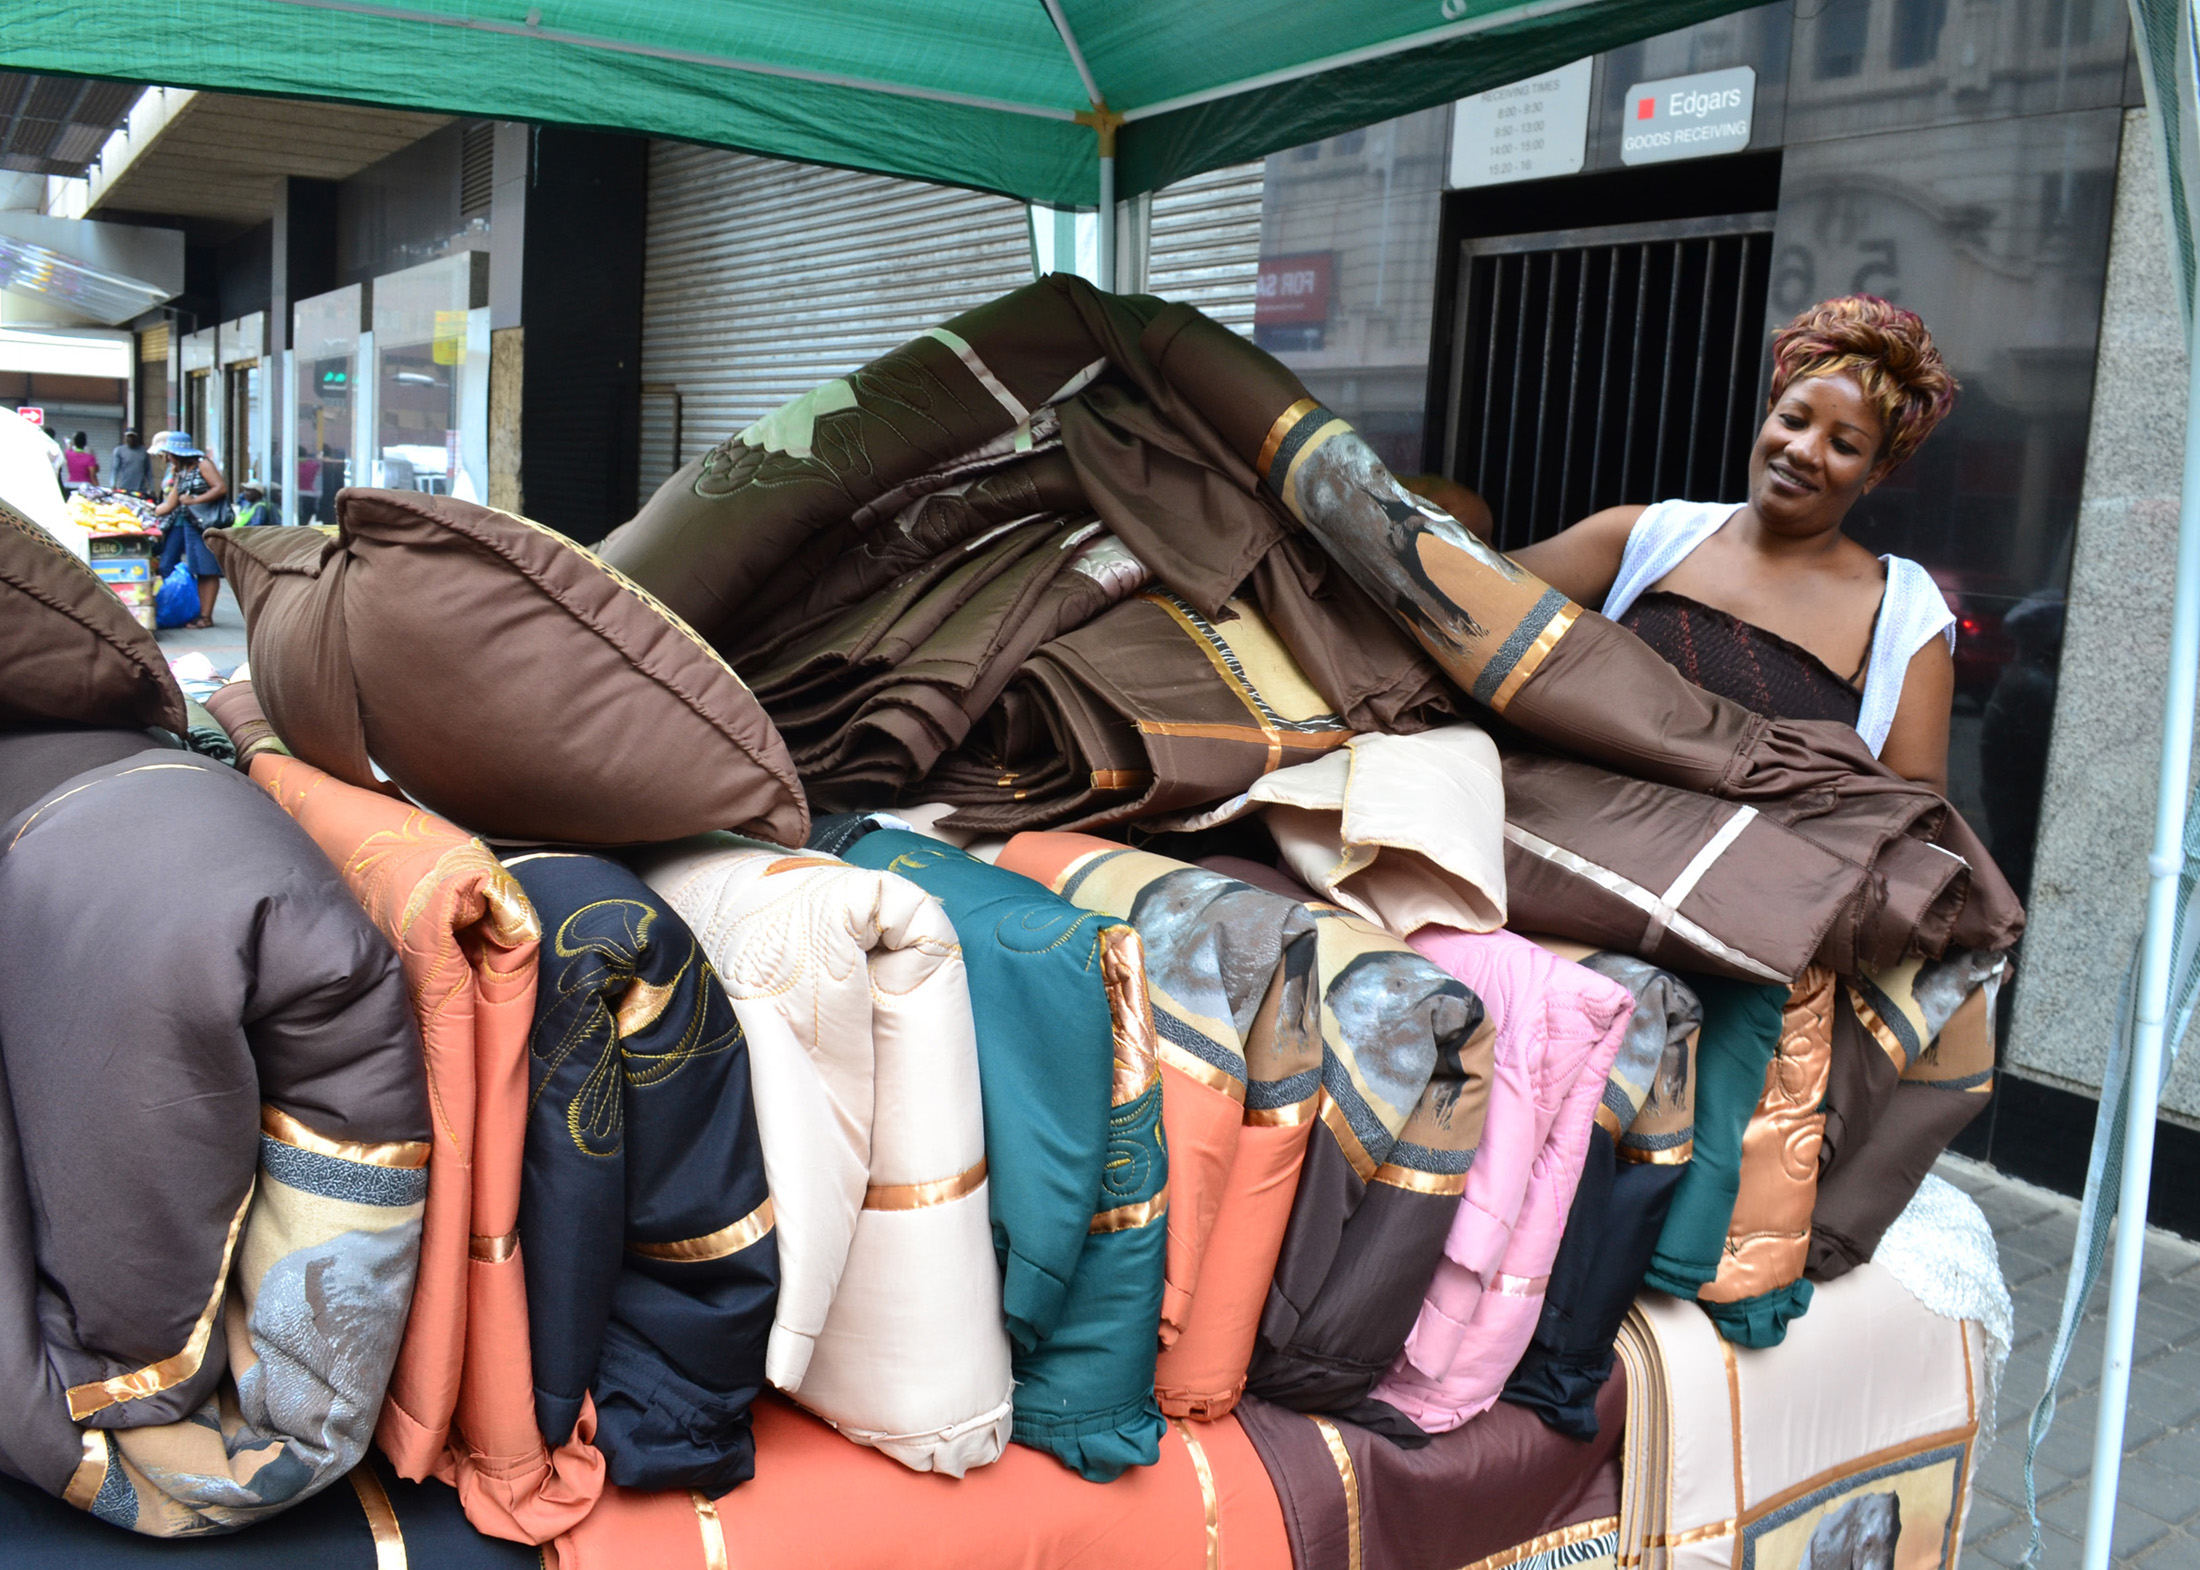 Anesu Sithole, from Zimbabwe, has been making and selling bedspreads and cushions from a stall in inner-city Johannesburg for four years. Without access to  training or capital she cannot expand the business and earns just enough to feed her family